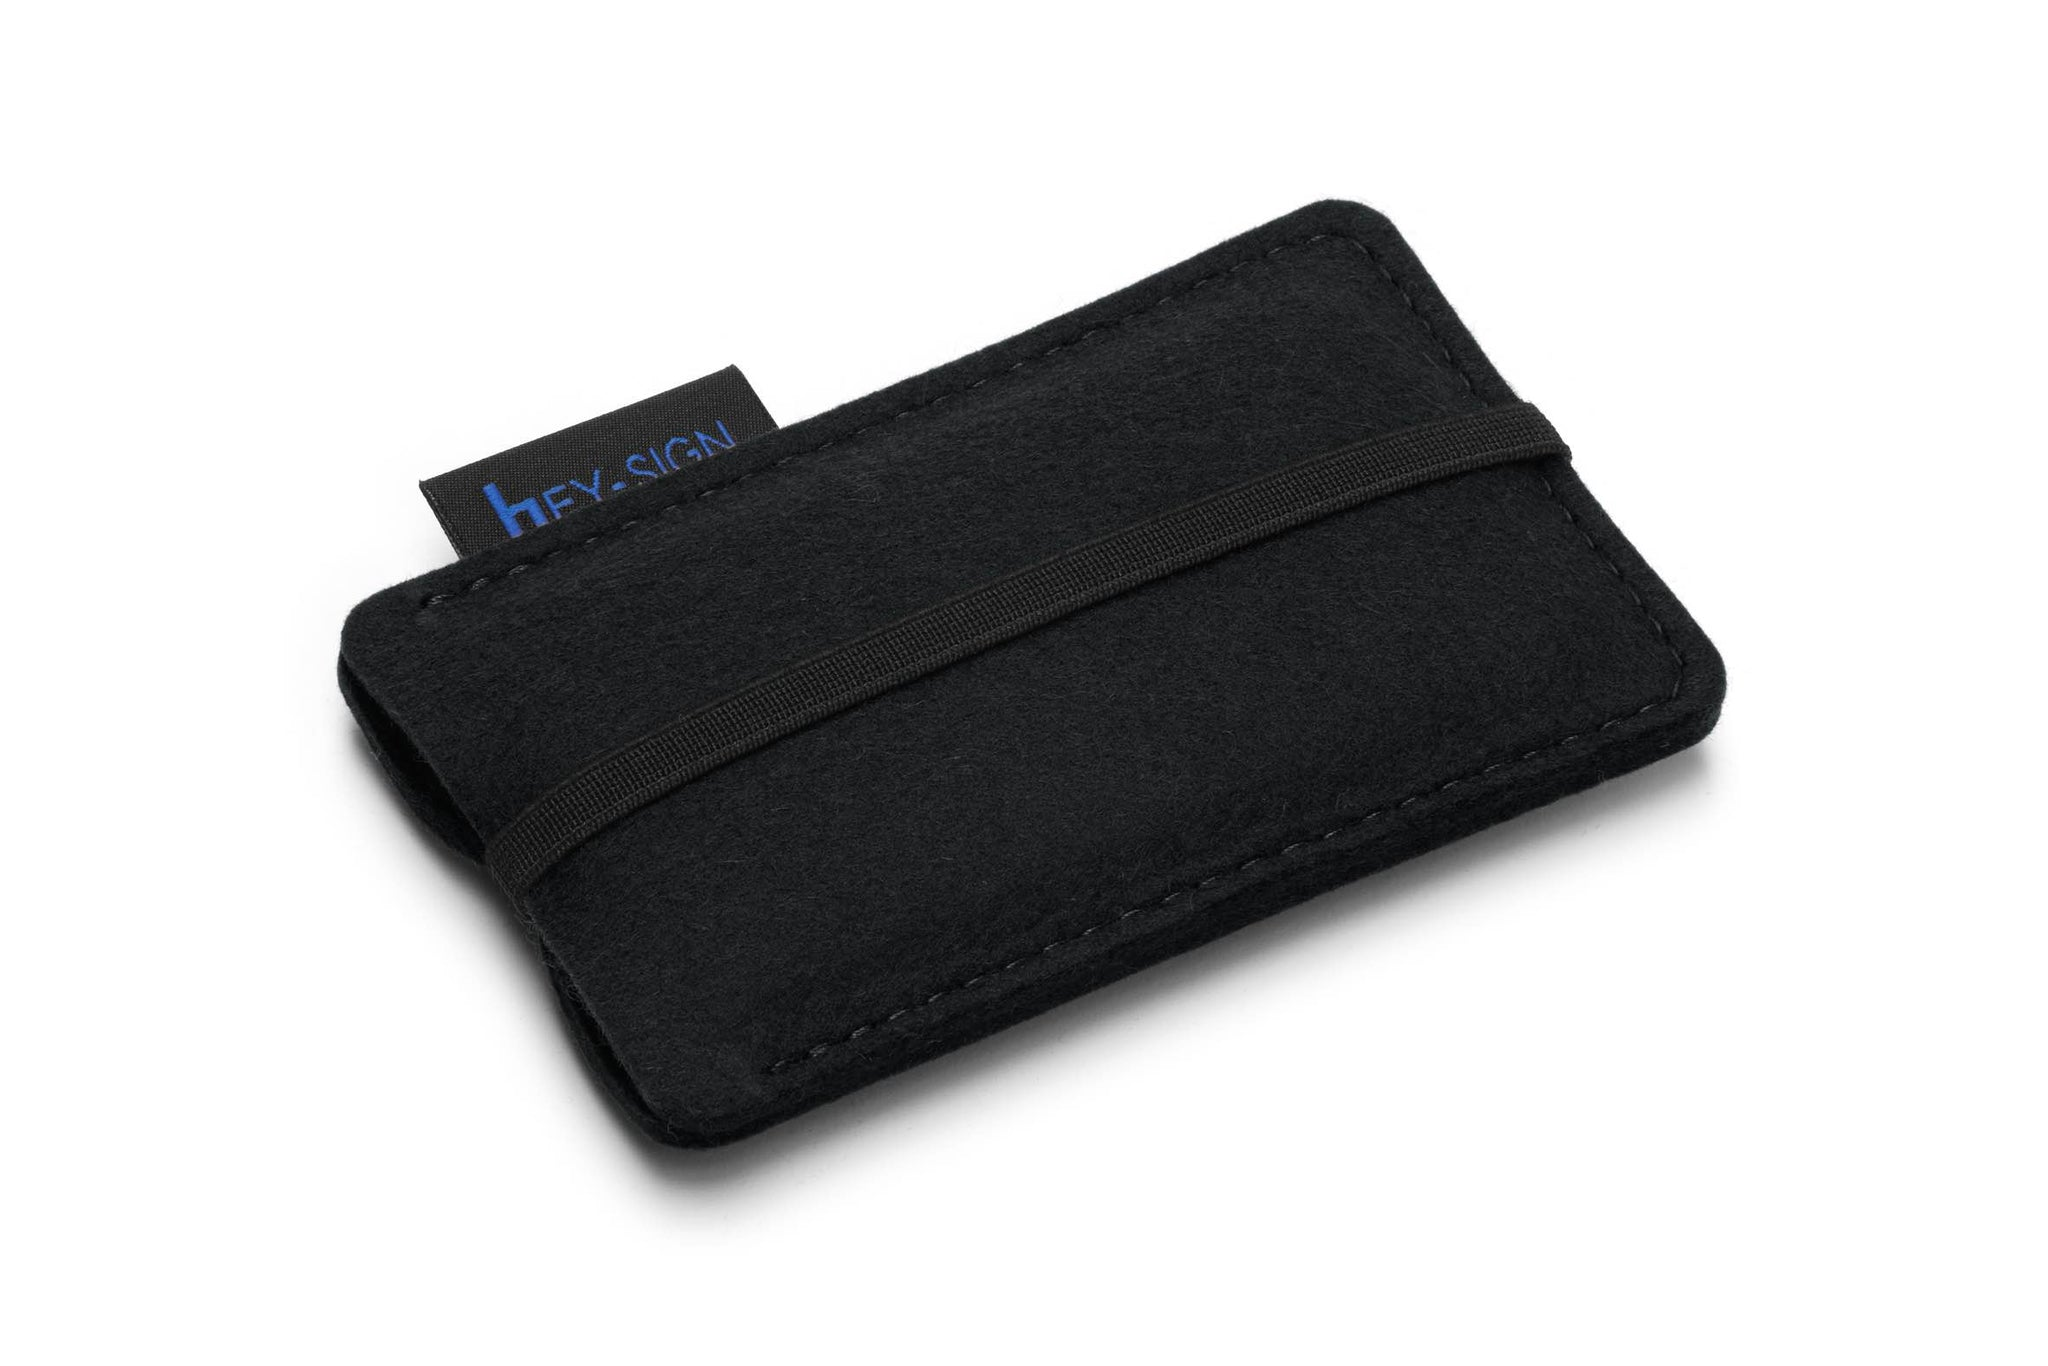 Felt Smartphone Sleeve or Pouch in Black by Hey-Sign 301031402